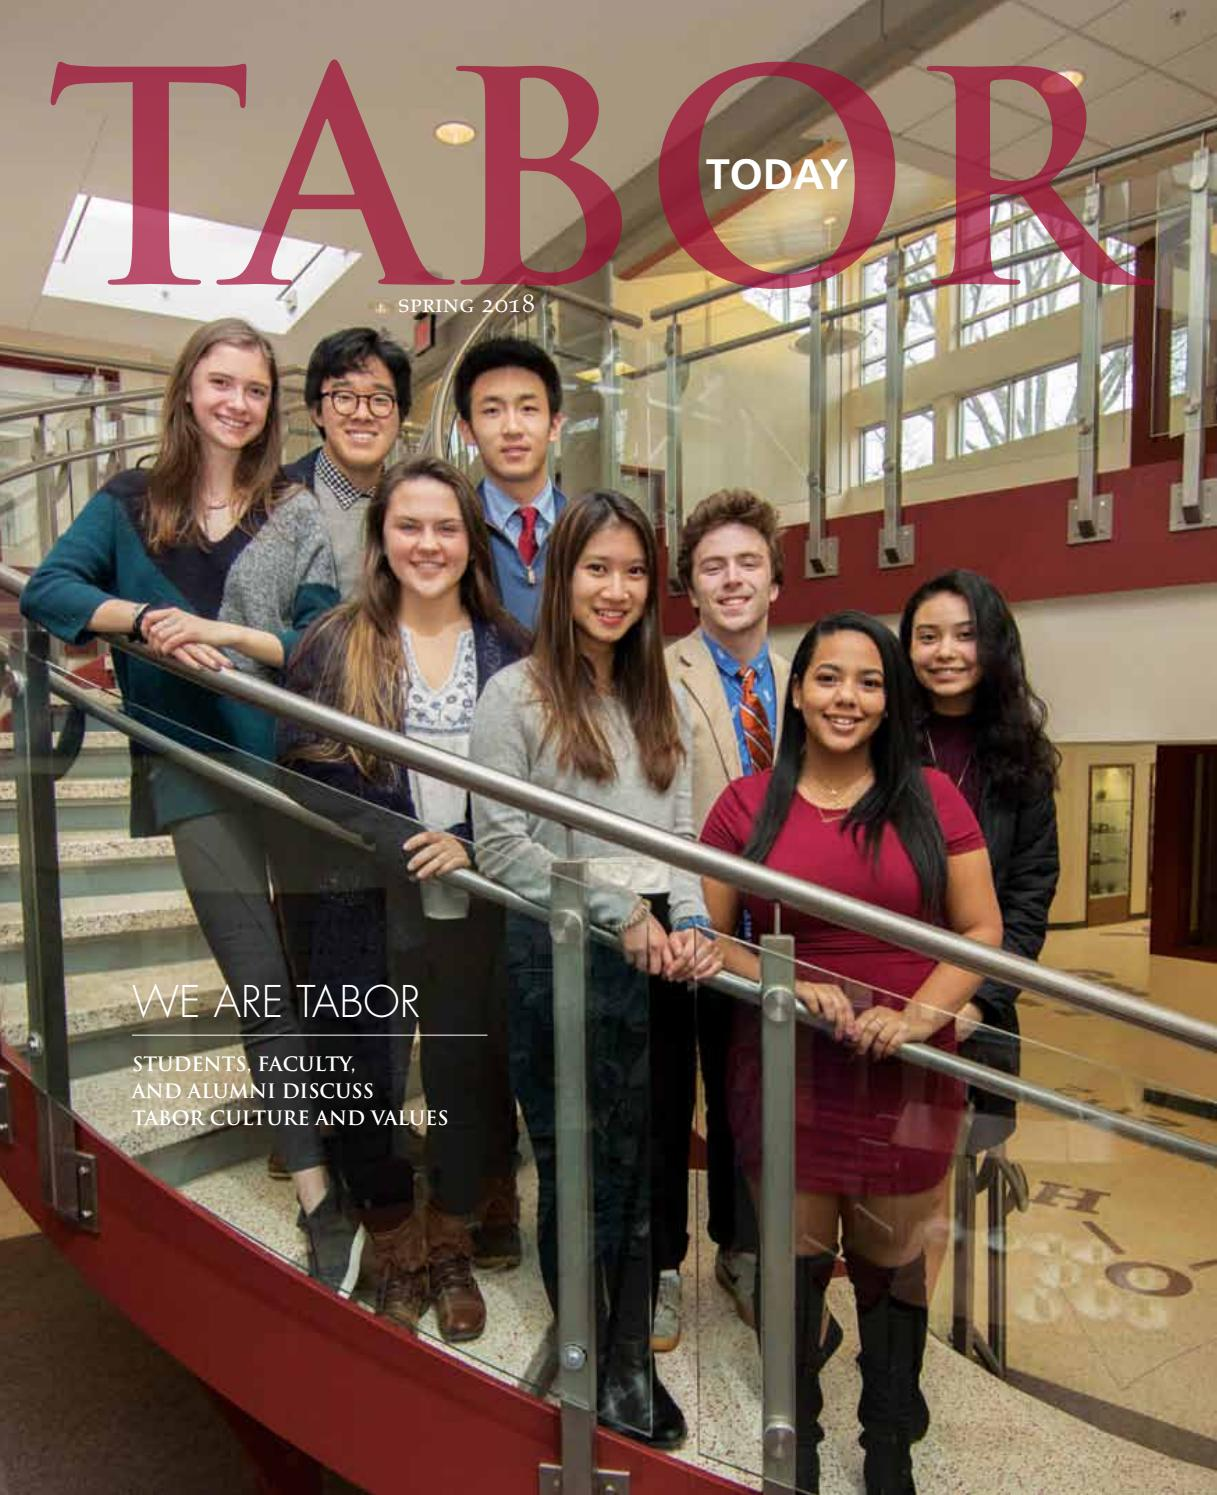 Tabor Today Spring 2018 by Tabor Academy - issuu